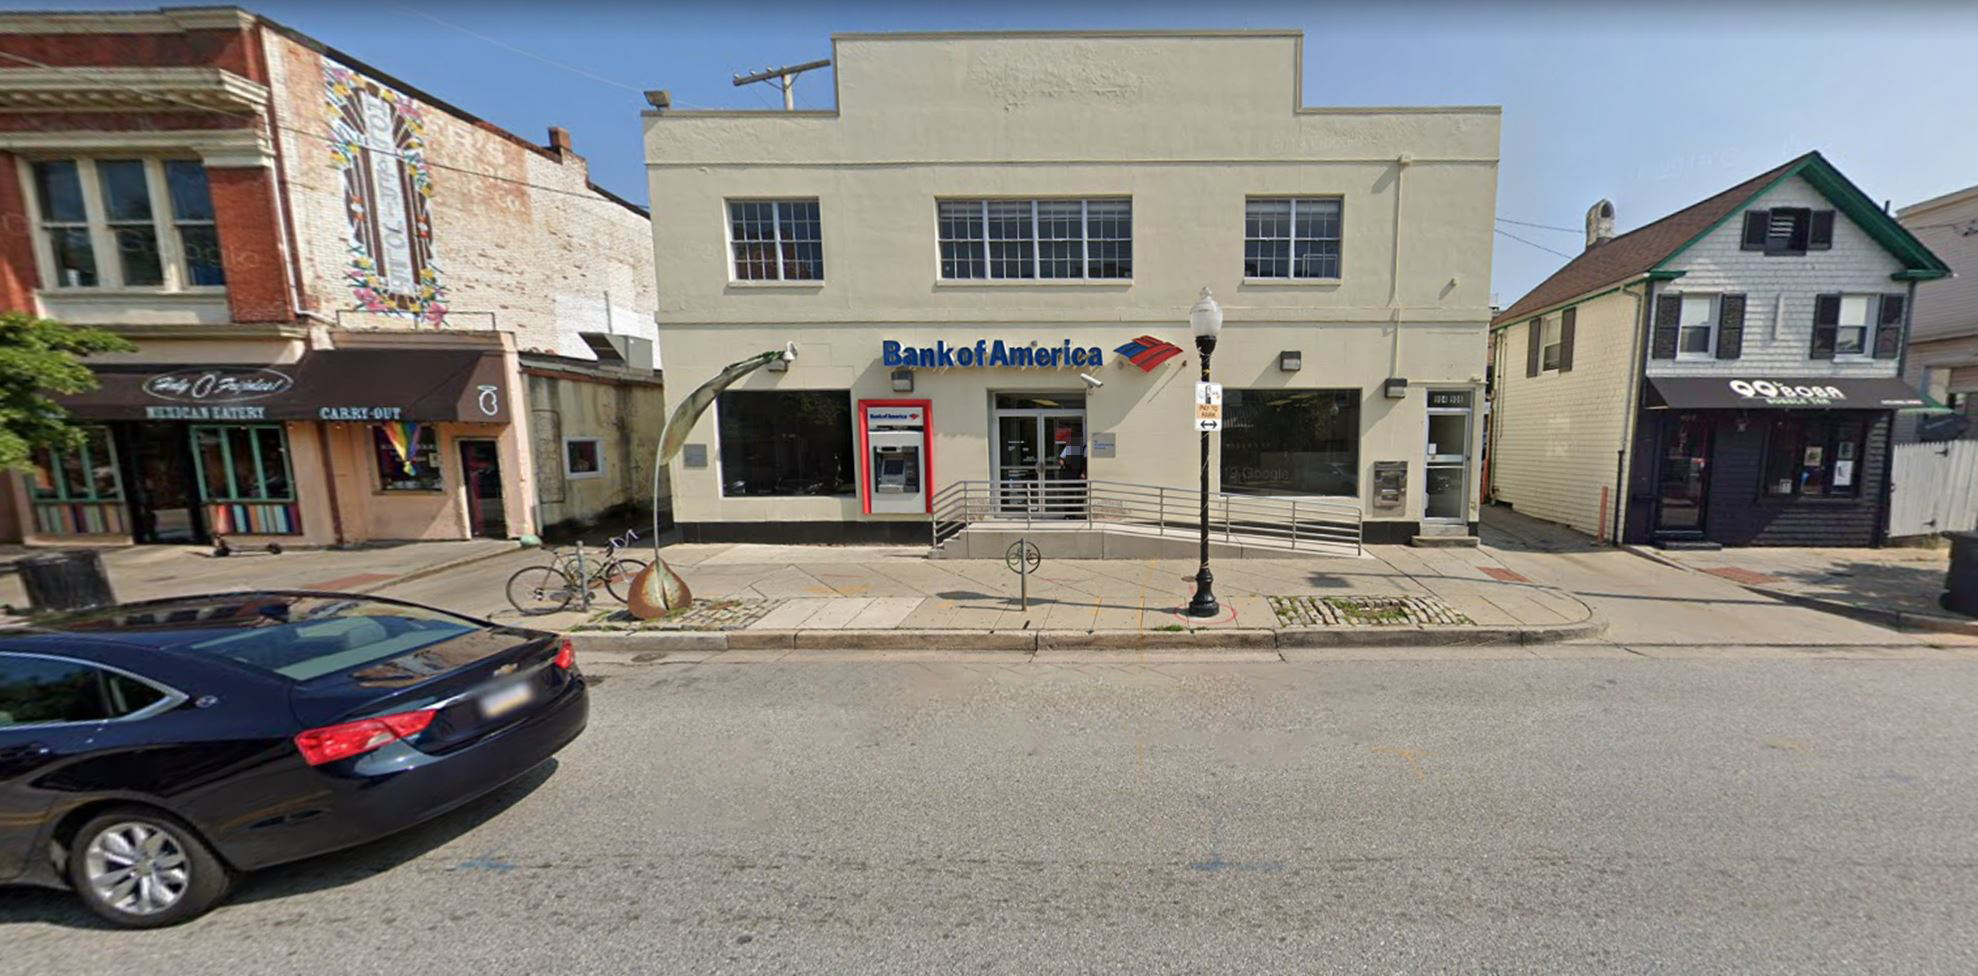 Bank of America financial center with walk-up ATM | 902 W 36th St, Baltimore, MD 21211